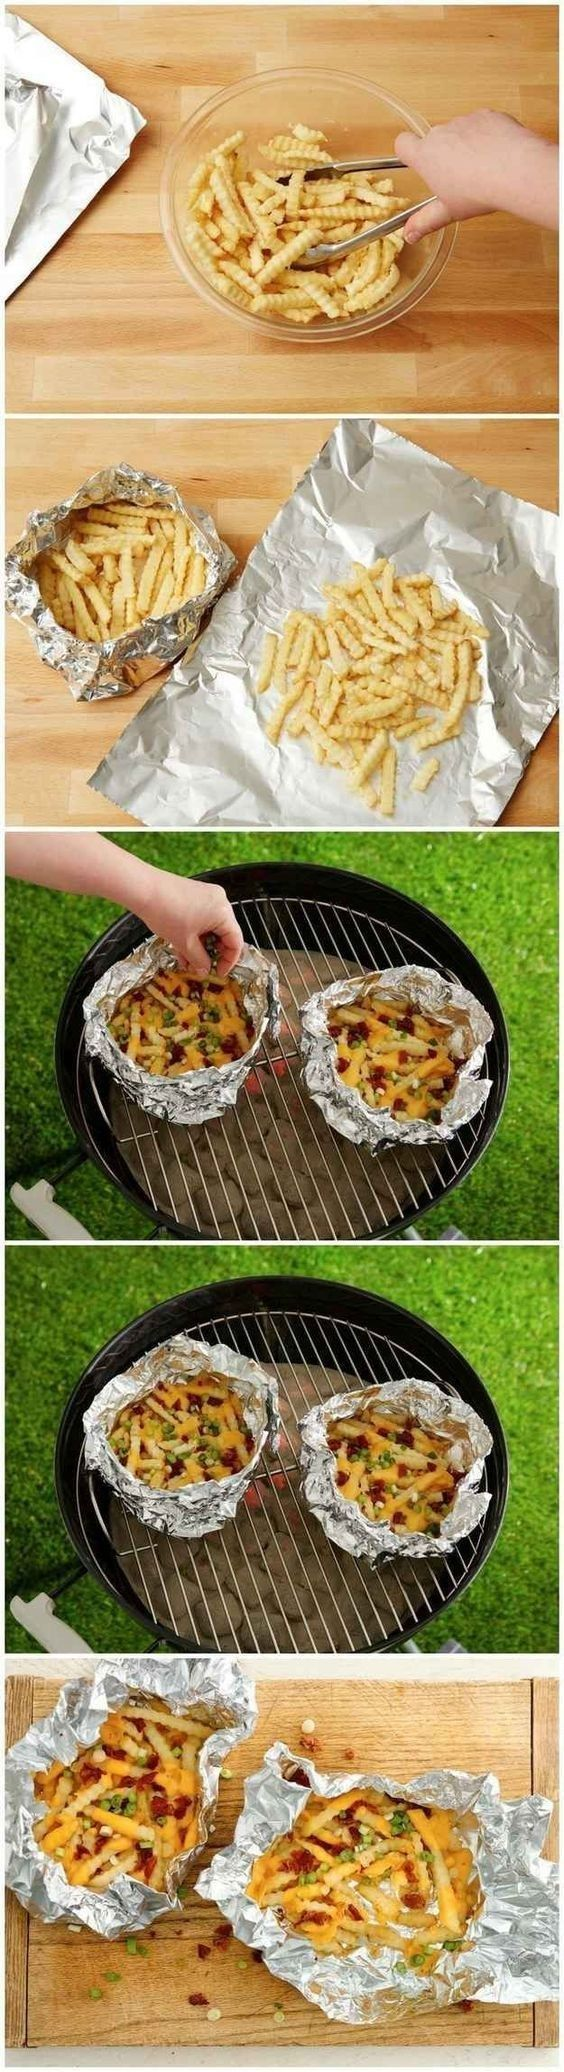 Foil Pack Loaded Fries | 17 Easy Campfire Treats Your Kids Will Love